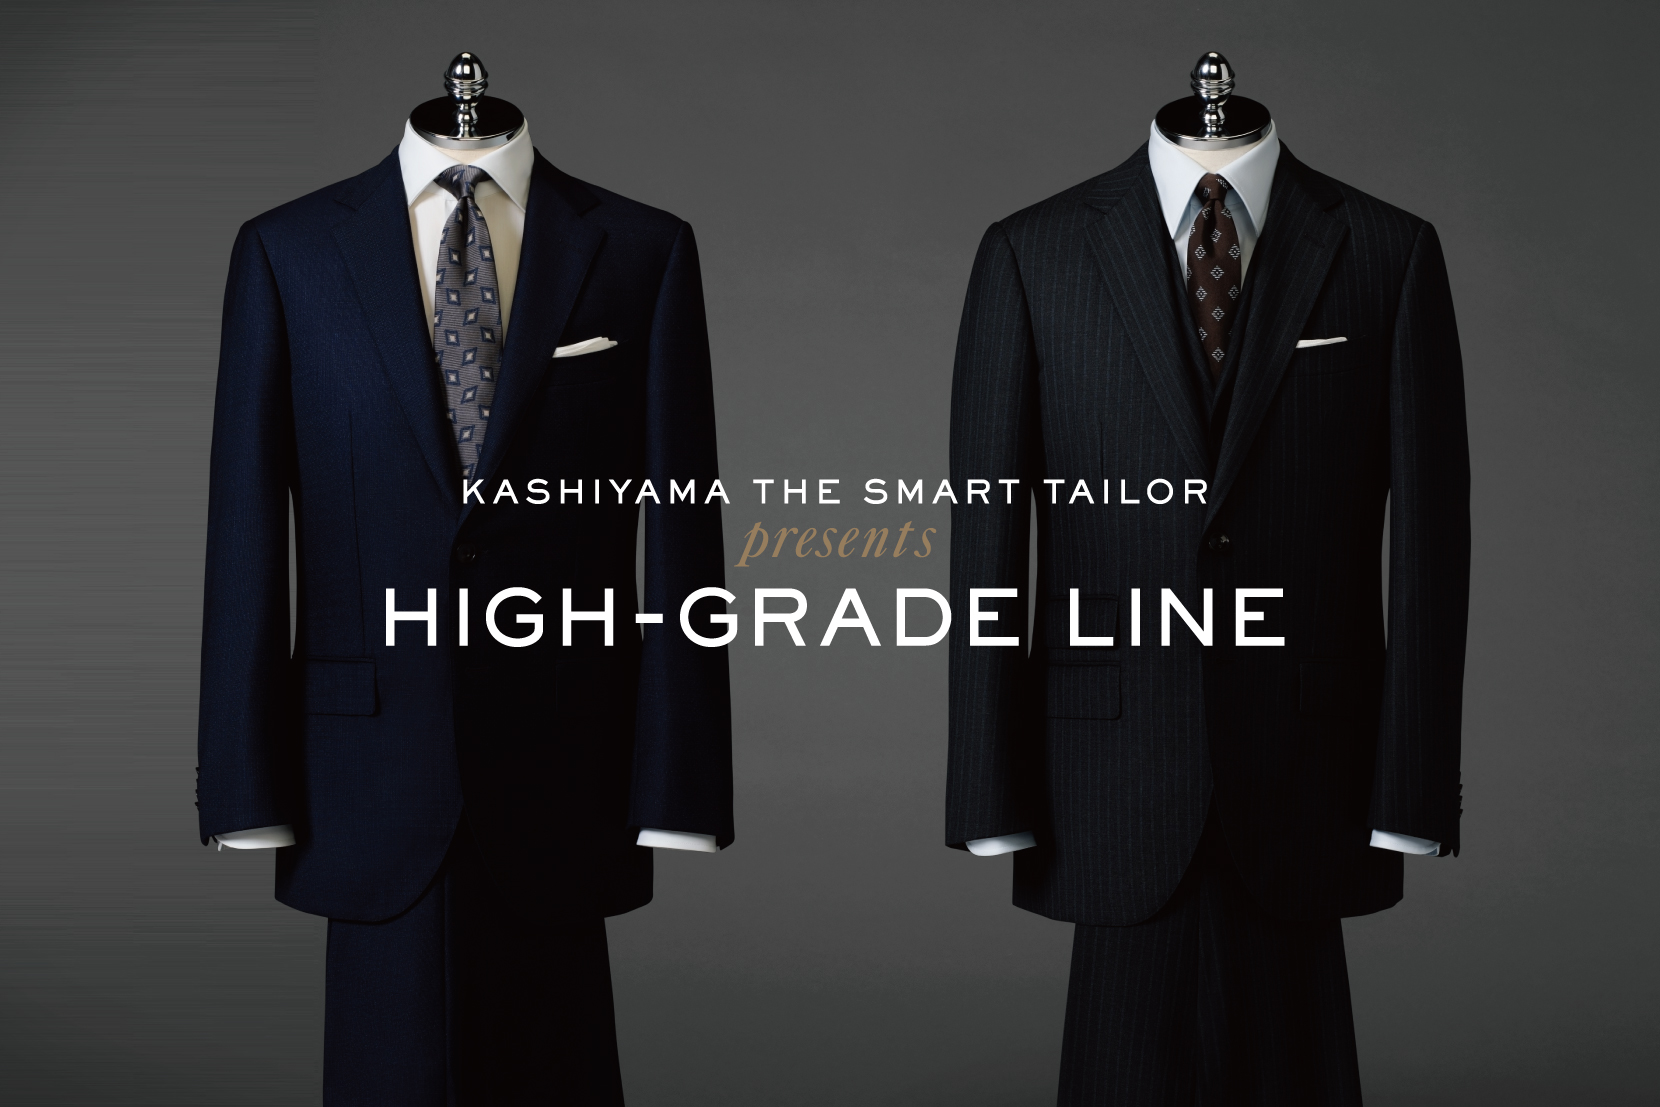 HIGH-GRADE LINE - KASHIYAMA the Smart Tailor